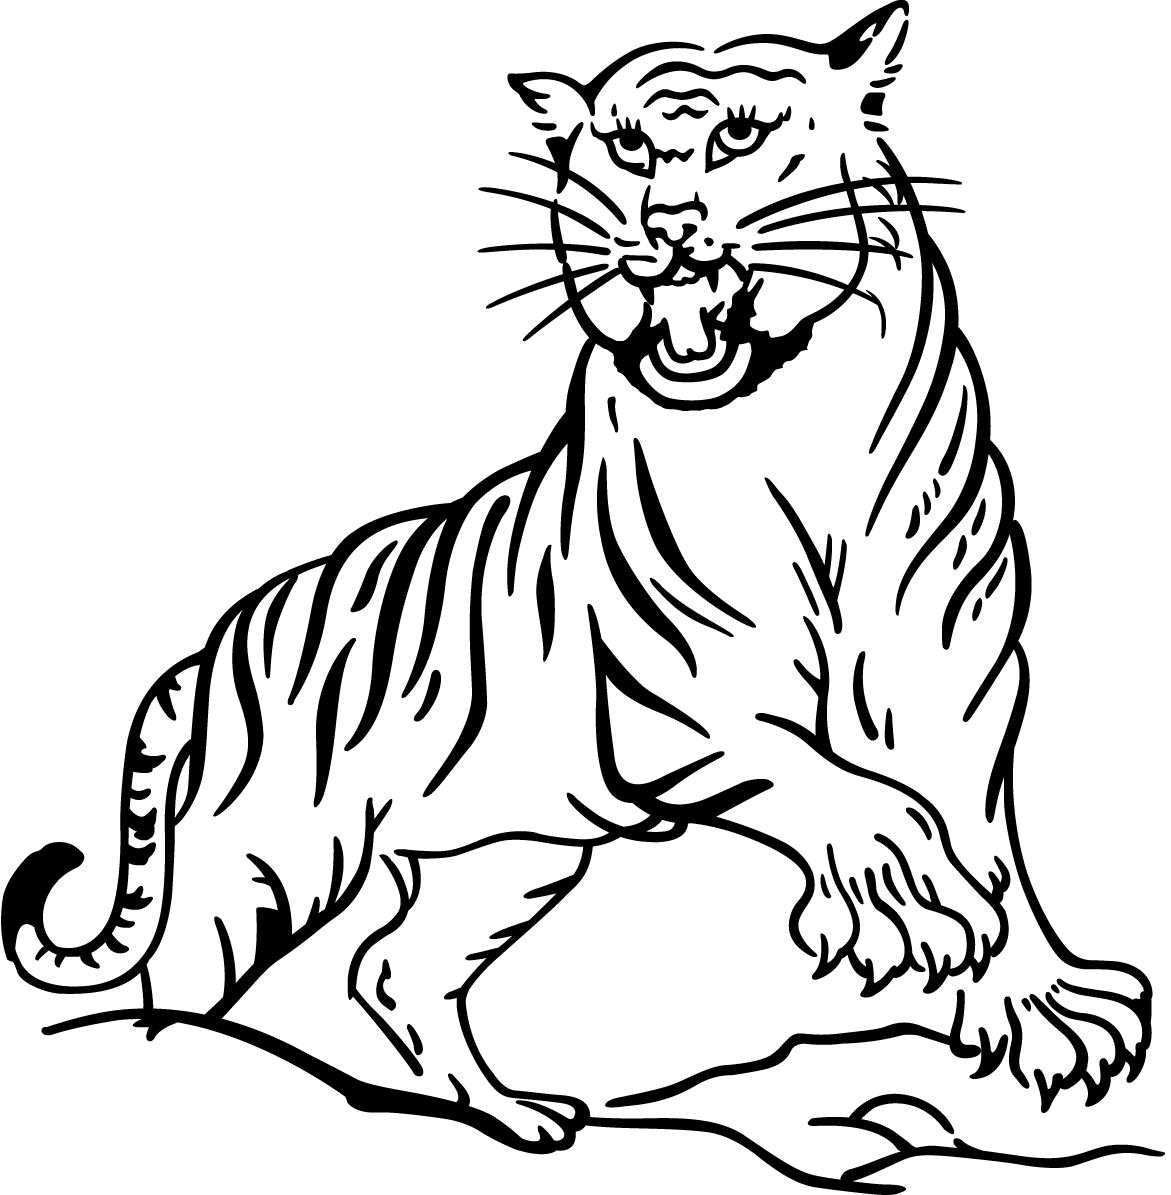 tiger colouring pictures tiger line drawing at getdrawings free download tiger pictures colouring